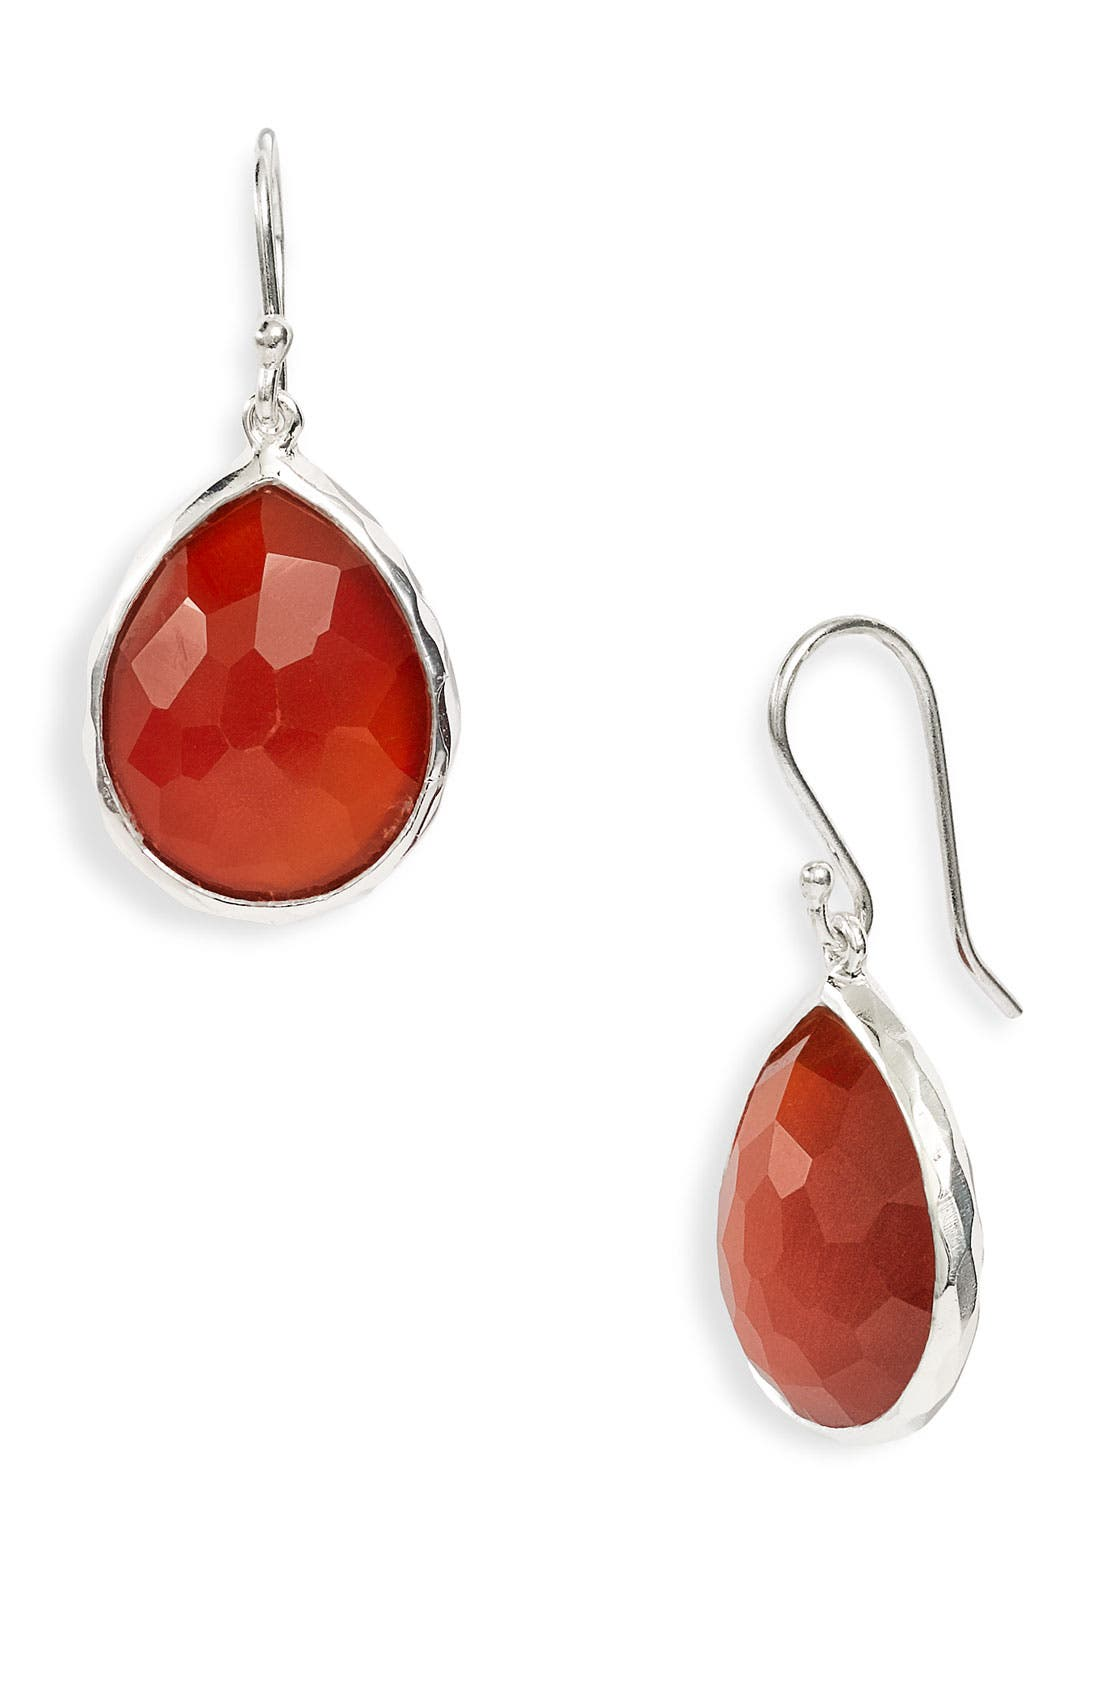 Alternate Image 1 Selected - Ippolita 'Grotto' Small Teardrop Earrings